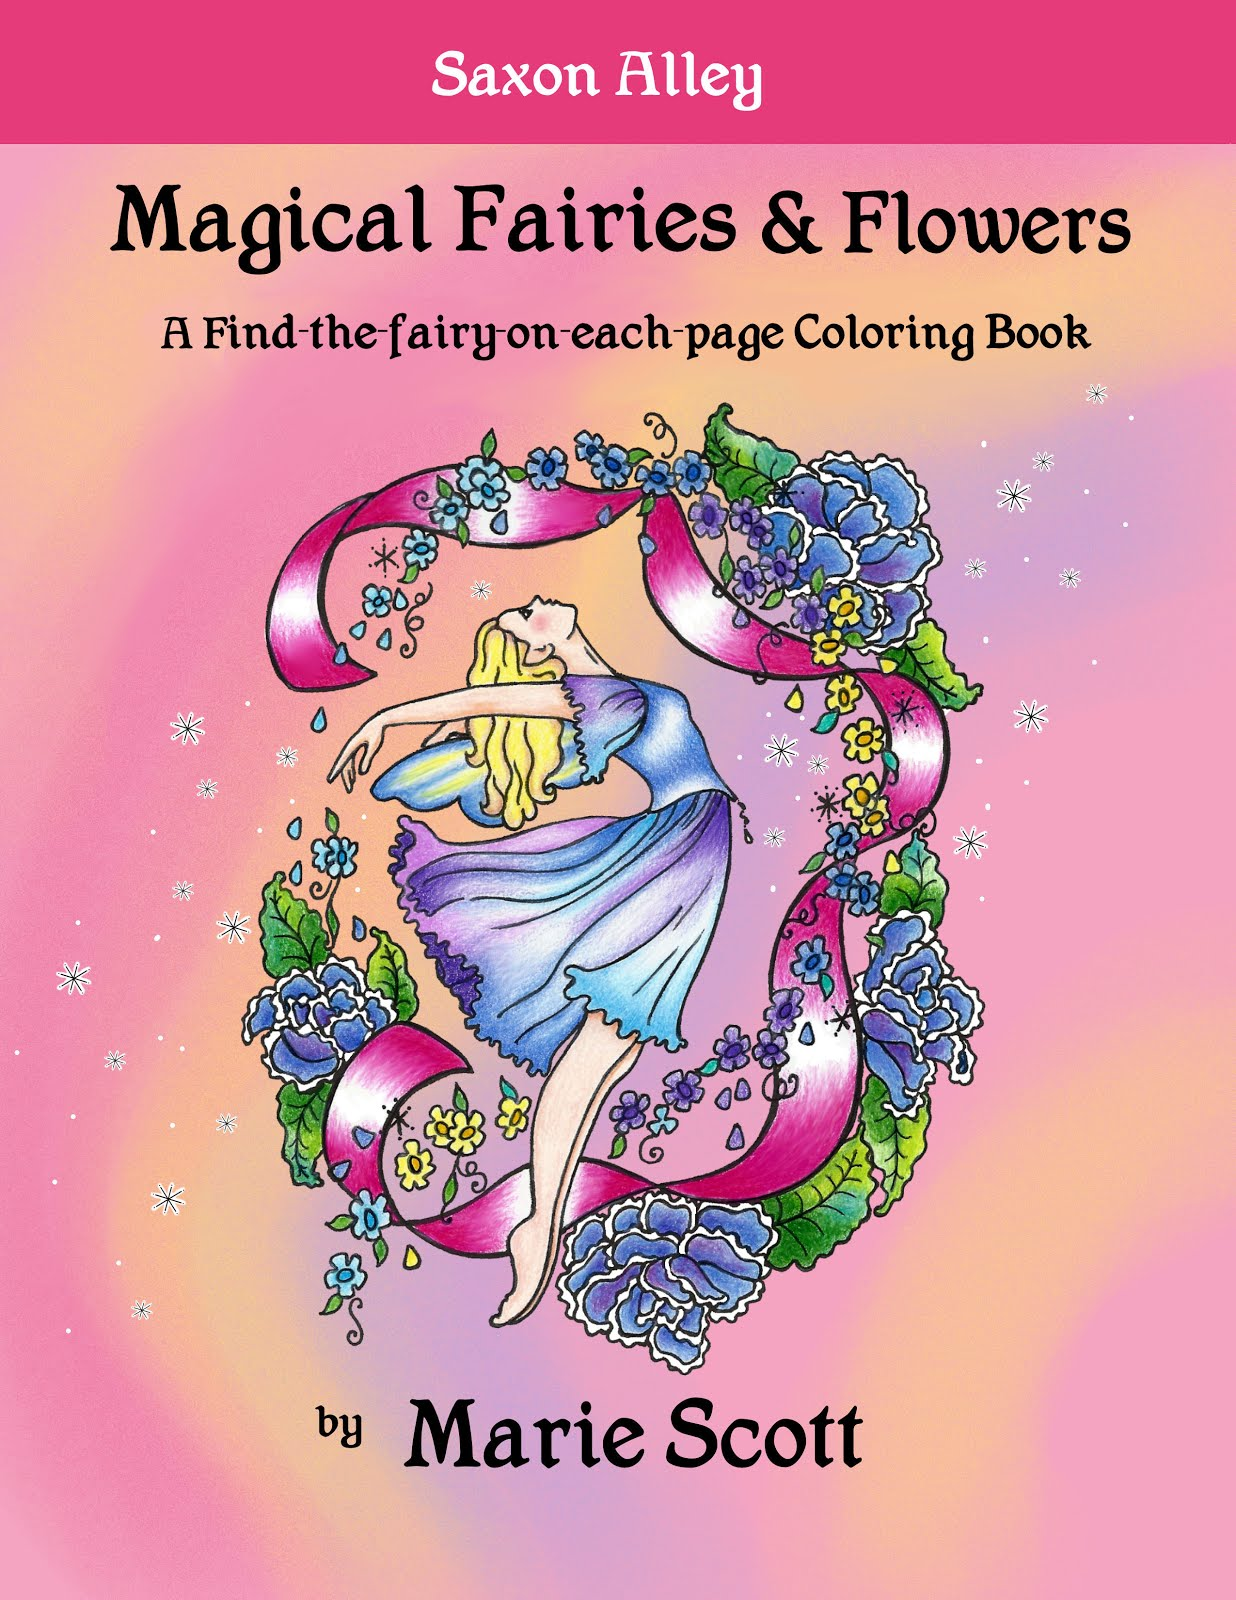 Magical Fairies & Flowers